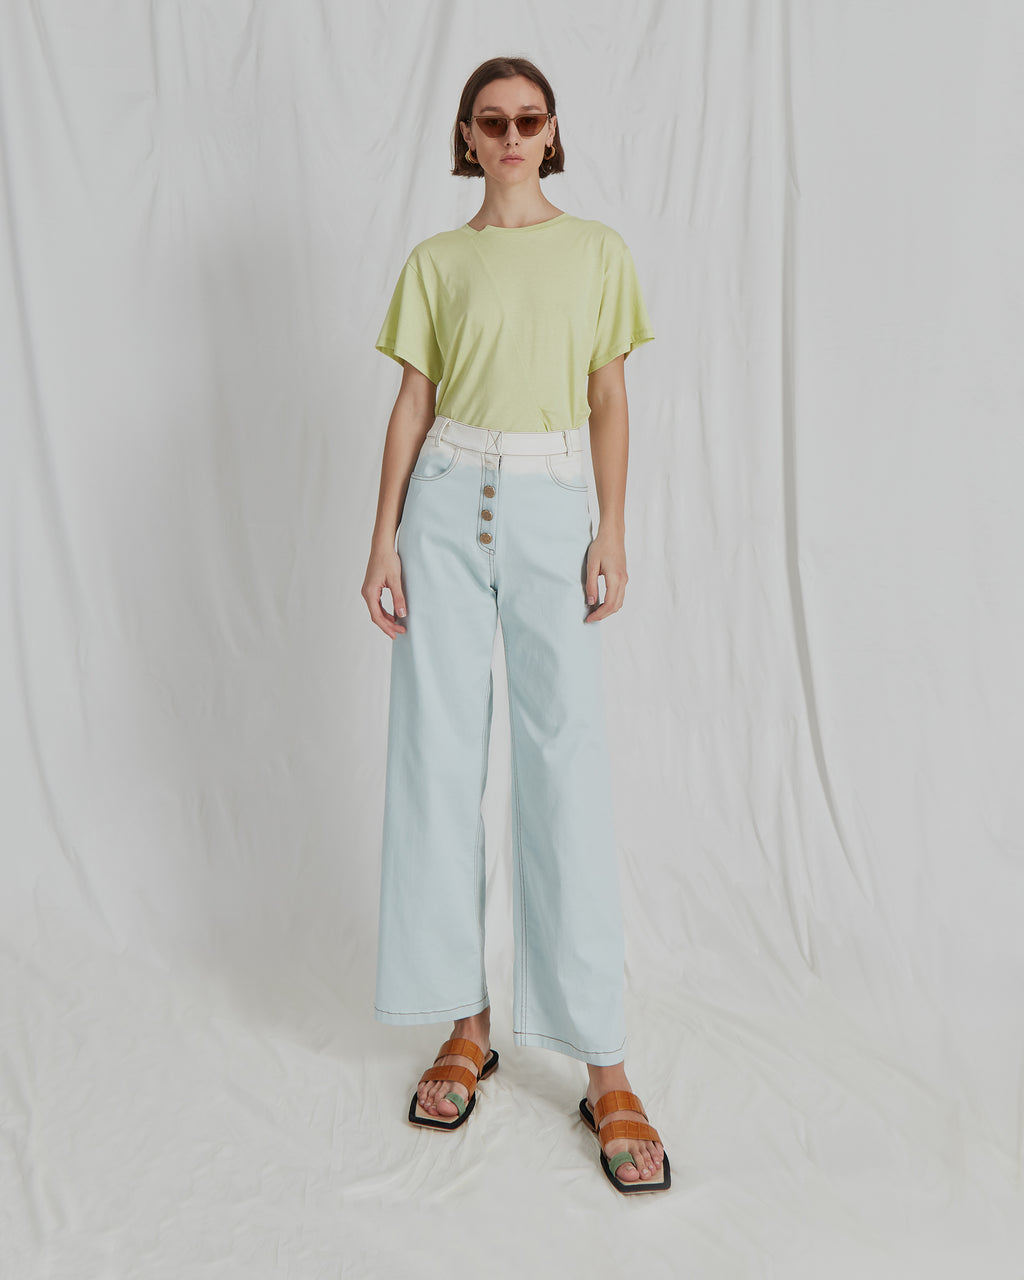 Valerie Jeans Cotton Denim Ombre Sky - SPECIAL PRICE